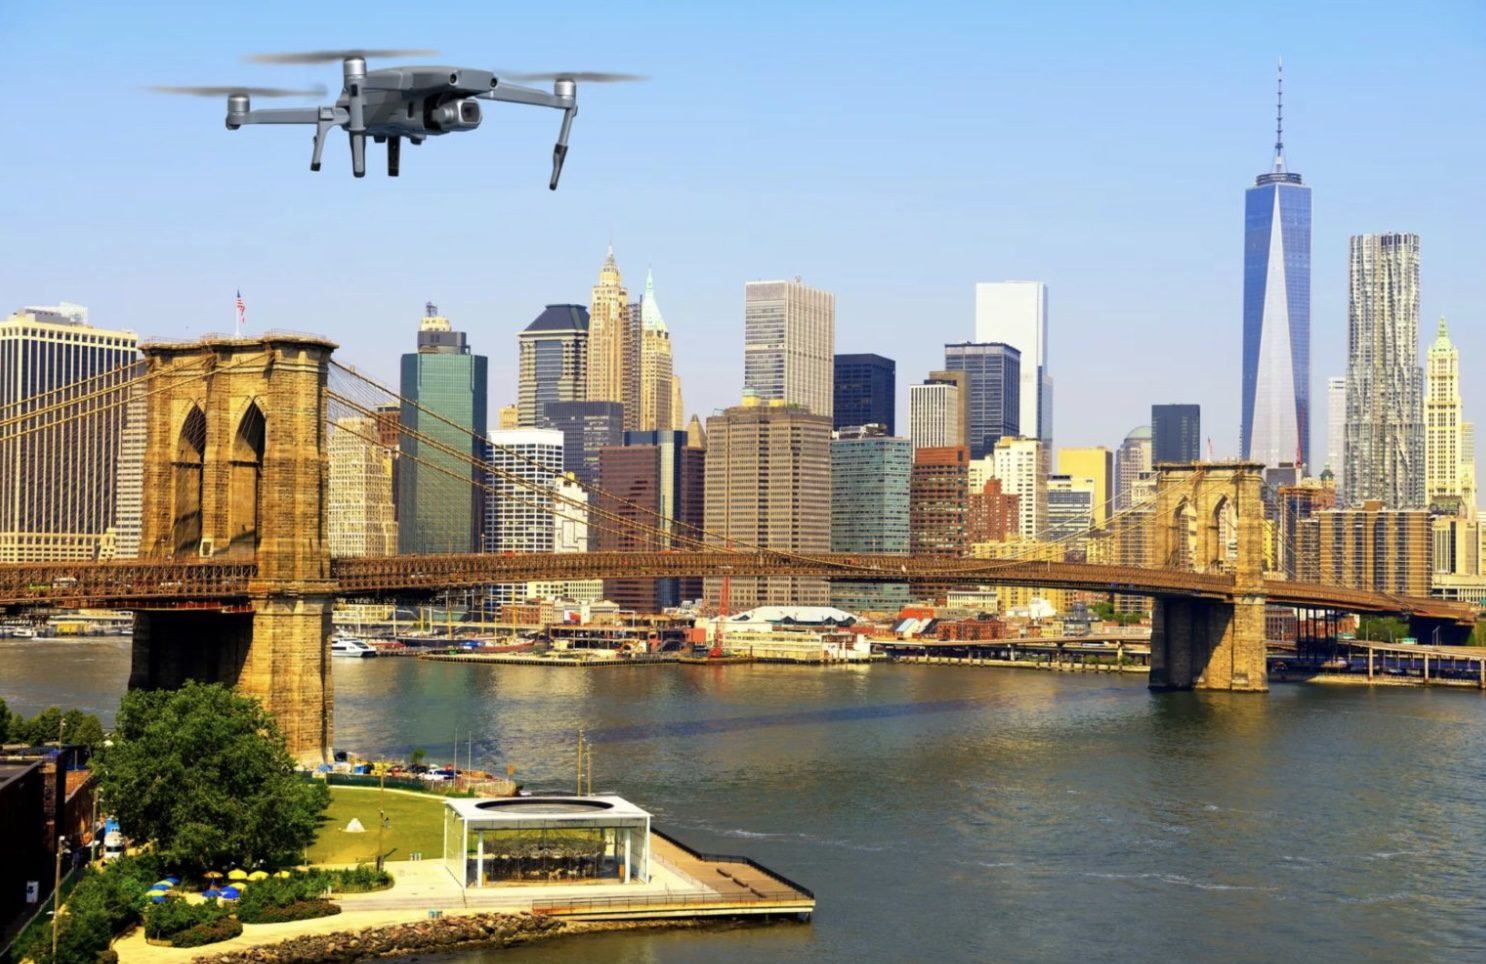 NYC tax collectors are looking to drones to increase revenue